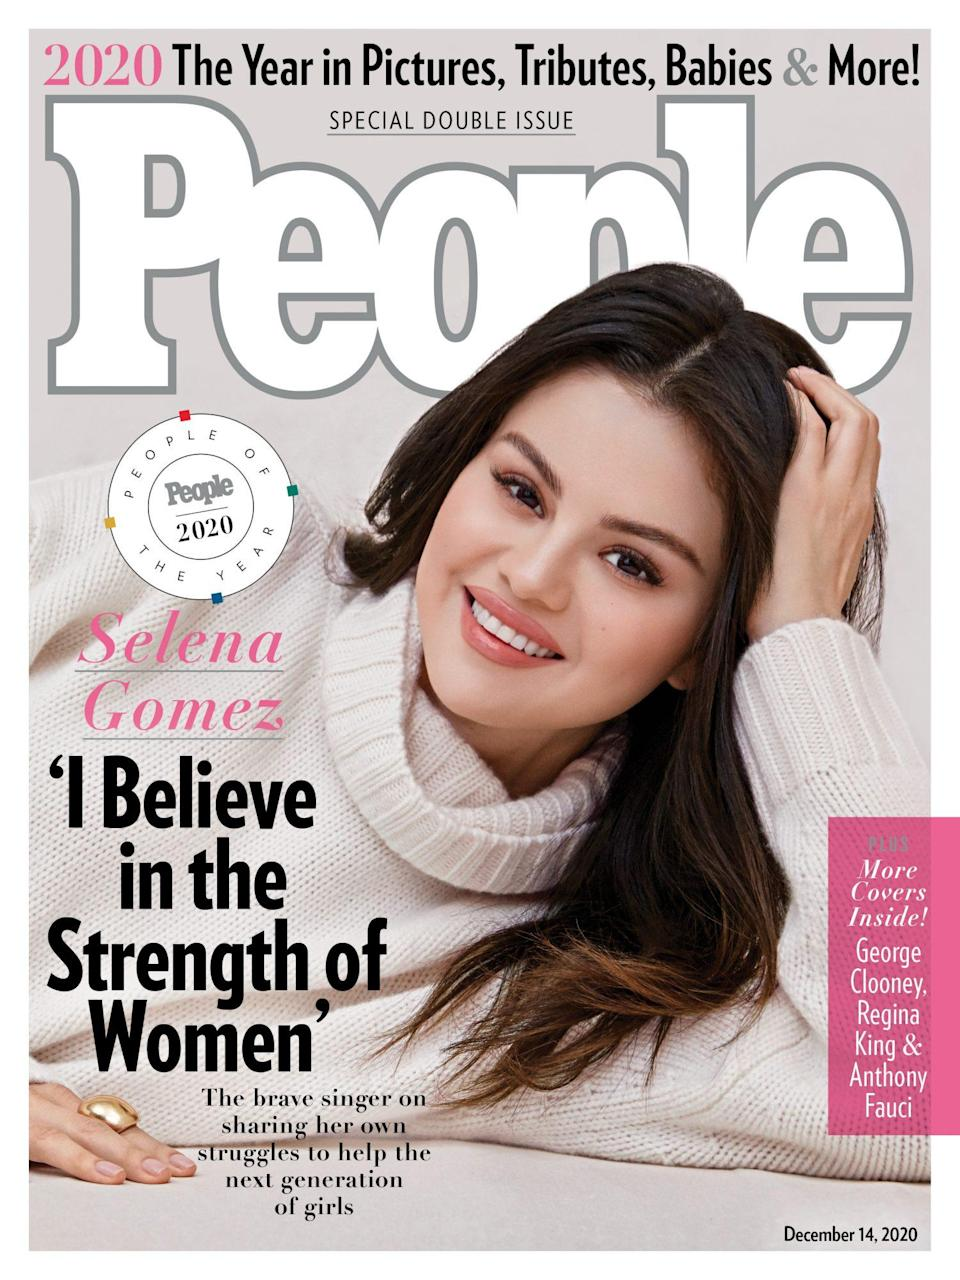 """<p>Watch the full episode of <em><a href=""""https://peopletv.com/video/people-of-the-year-2020-selena-gomez"""" rel=""""nofollow noopener"""" target=""""_blank"""" data-ylk=""""slk:People of the Year: Selena Gomez"""" class=""""link rapid-noclick-resp"""">People of the Year: Selena Gomez</a> </em>streaming now on PeopleTV.com, or download the PeopleTV app on your favorite device. And pick up PEOPLE's year-end double issue — featuring Gomez's fellow People of the Year George Clooney, Regina King and Dr. Anthony Fauci — on newsstands Friday.</p>"""